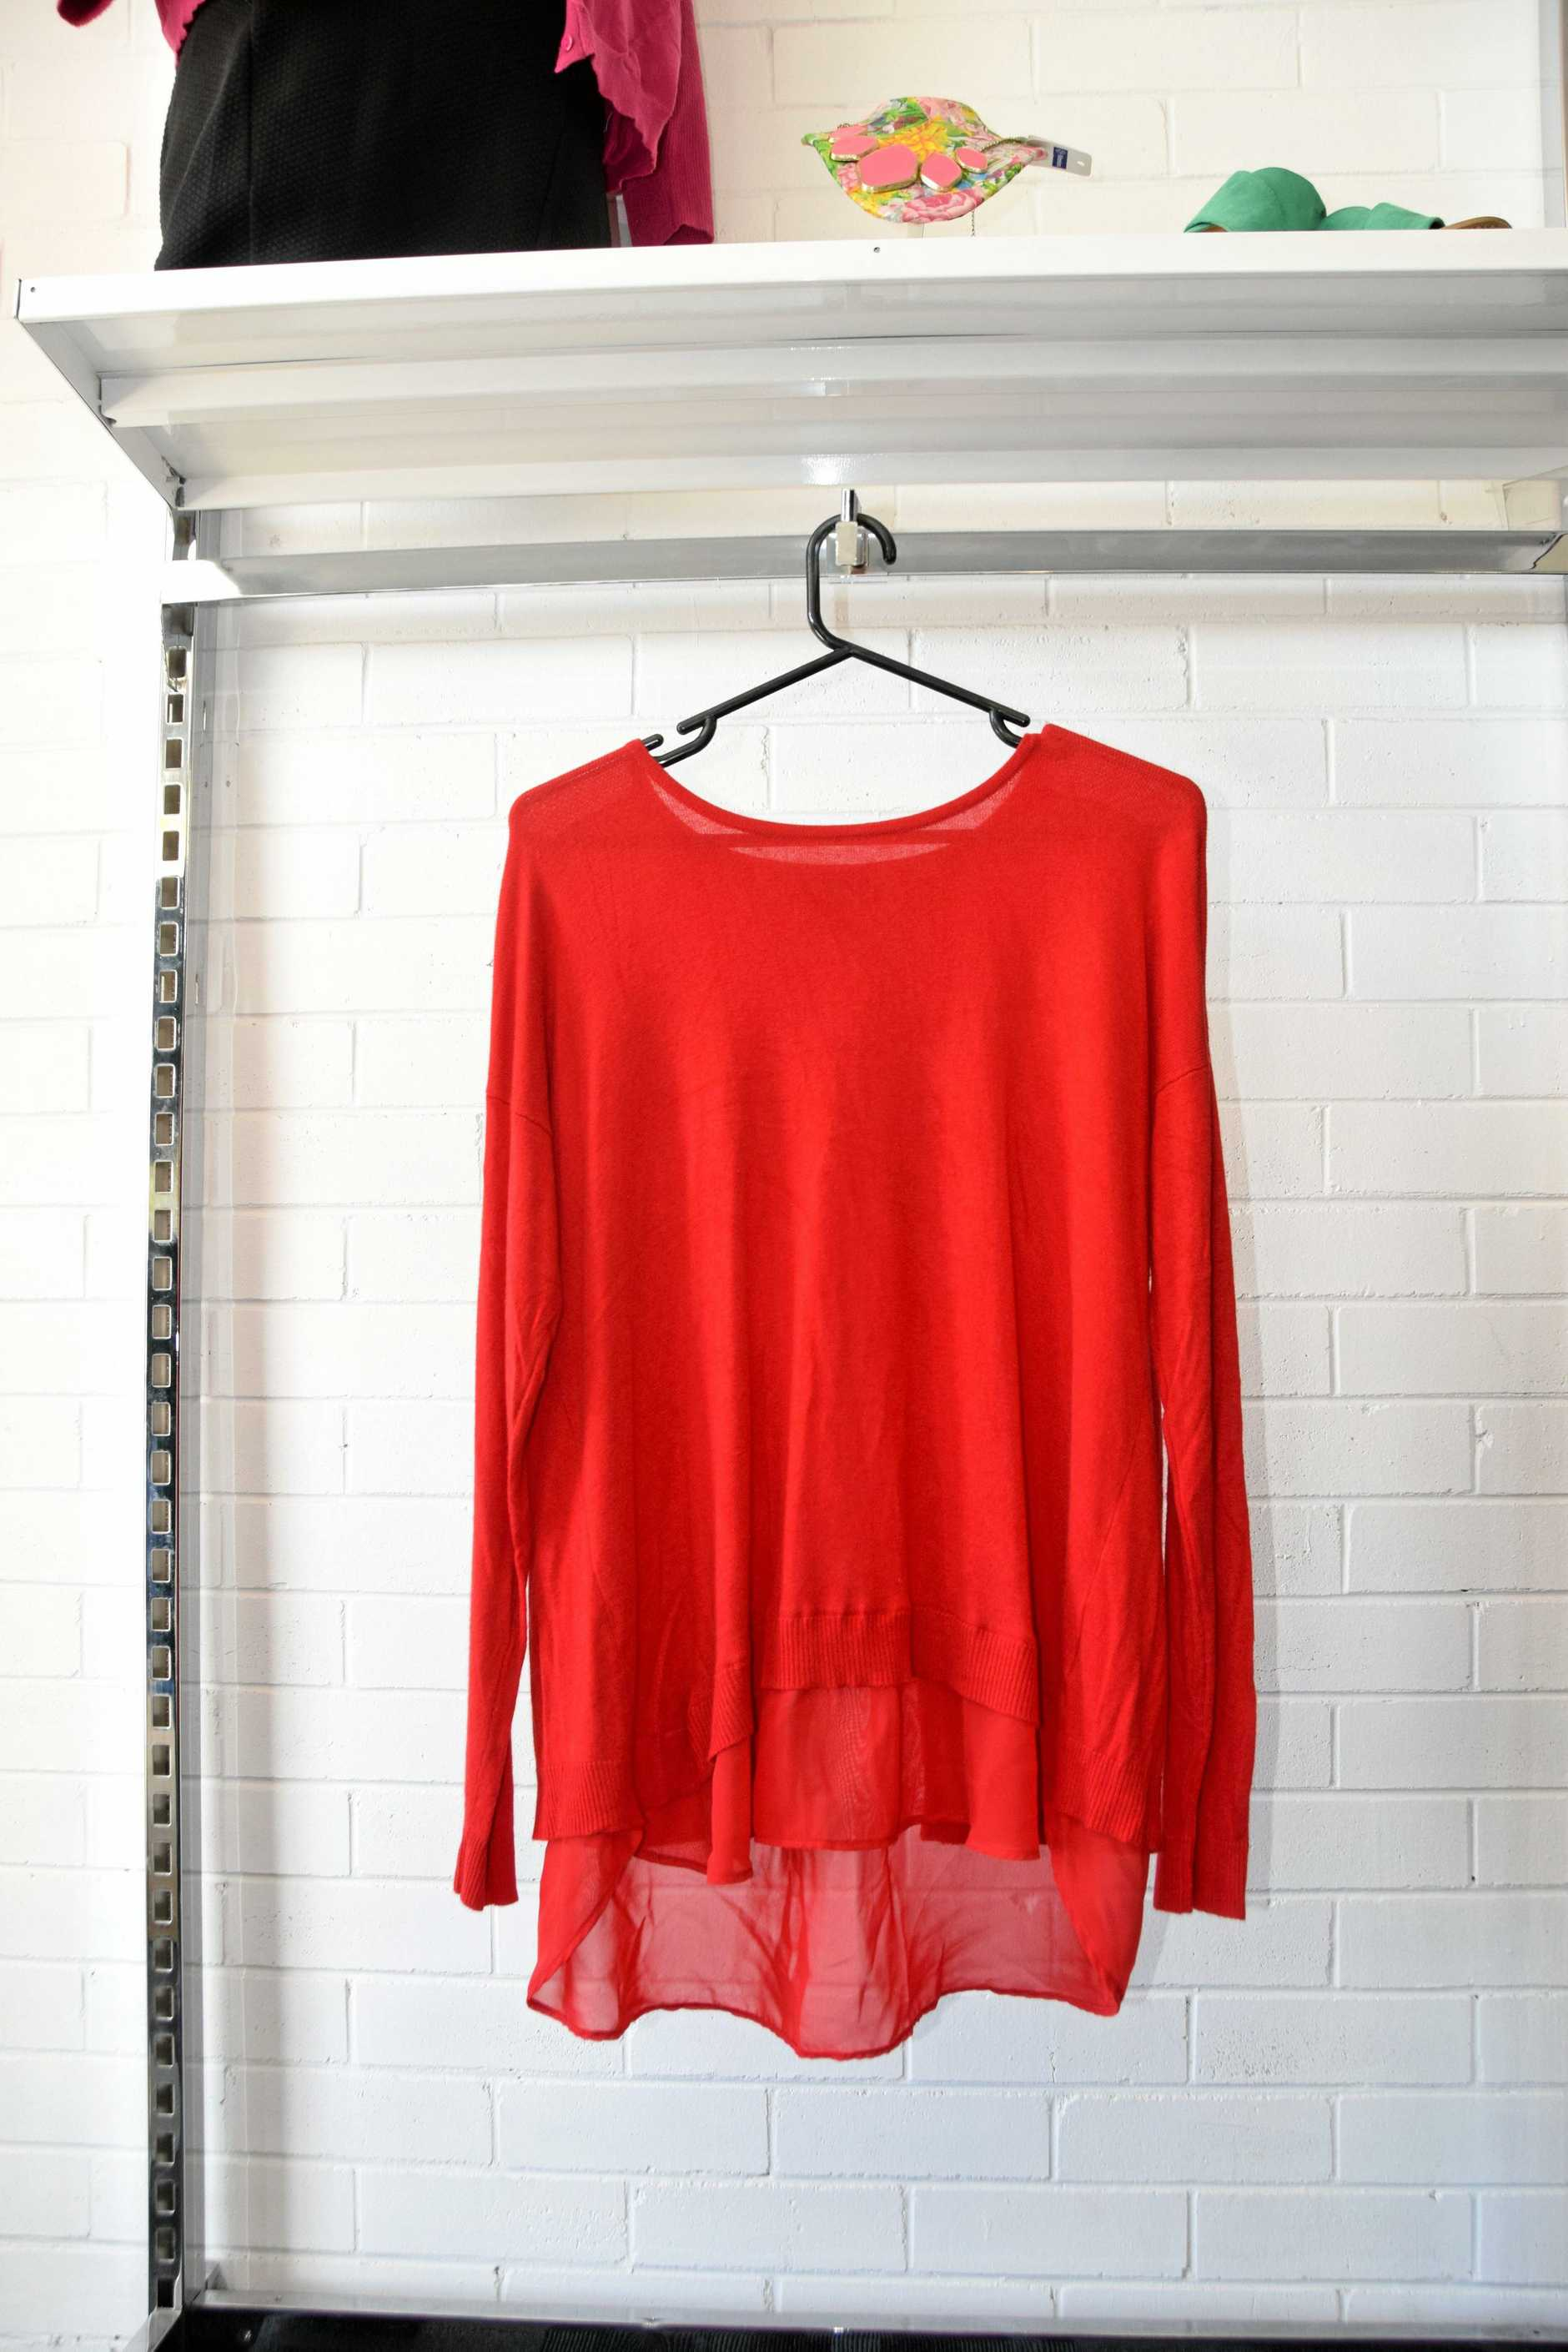 Vinnies women's red light jumper size large from Katies, $6